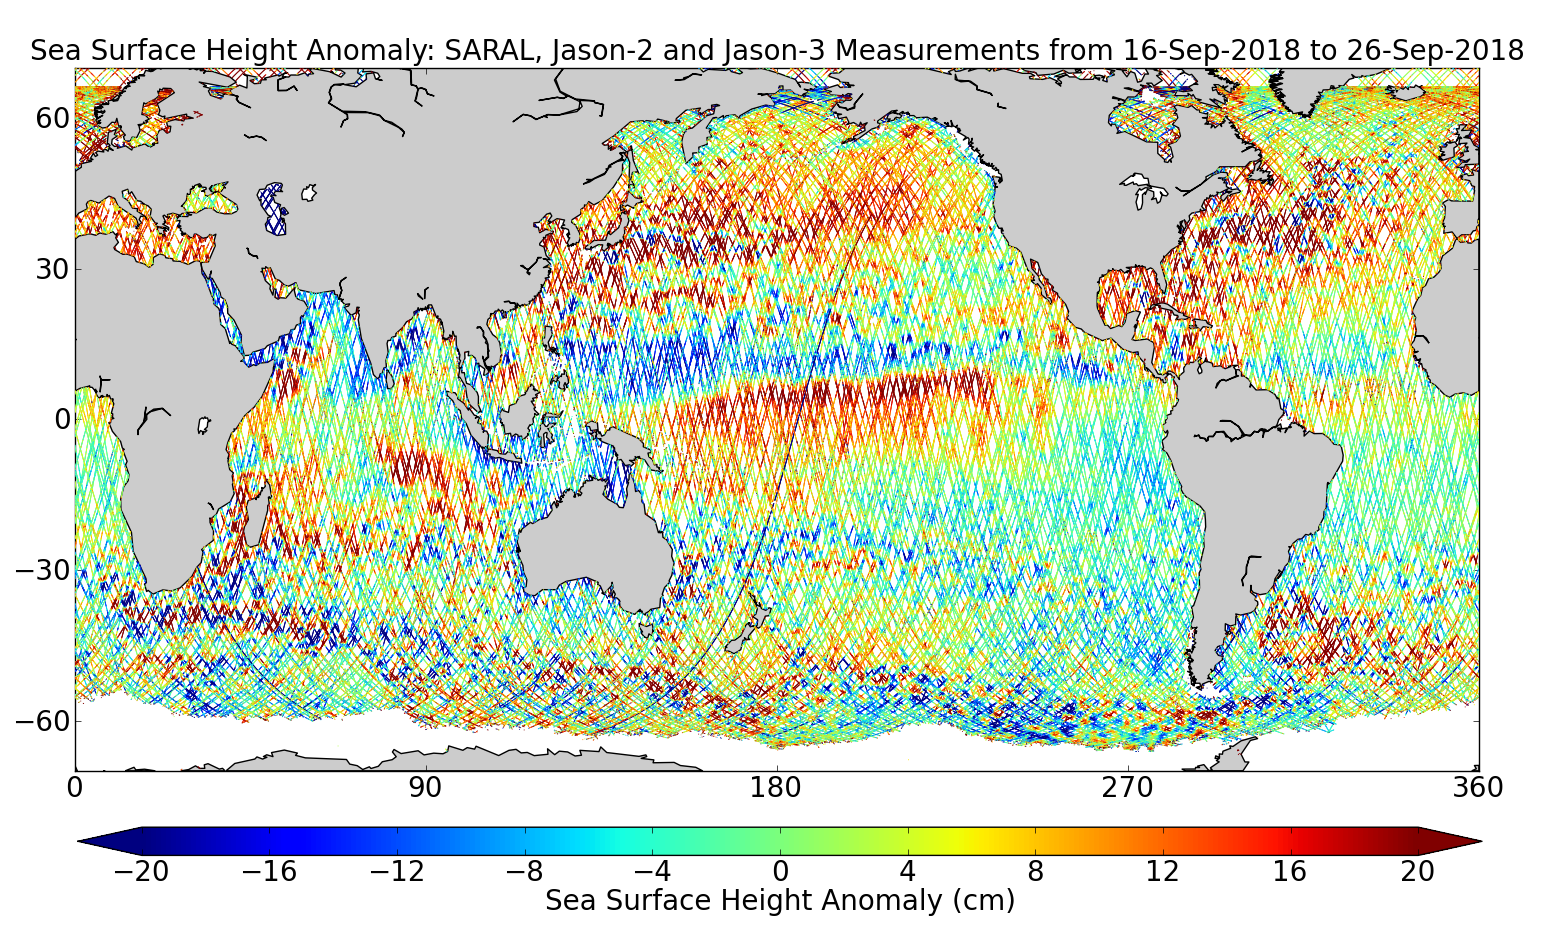 Sea Surface Height Anomaly: SARAL, Jason-2 and Jason-3 Measurements from 16-Sep-2018 to 26-Sep-2018